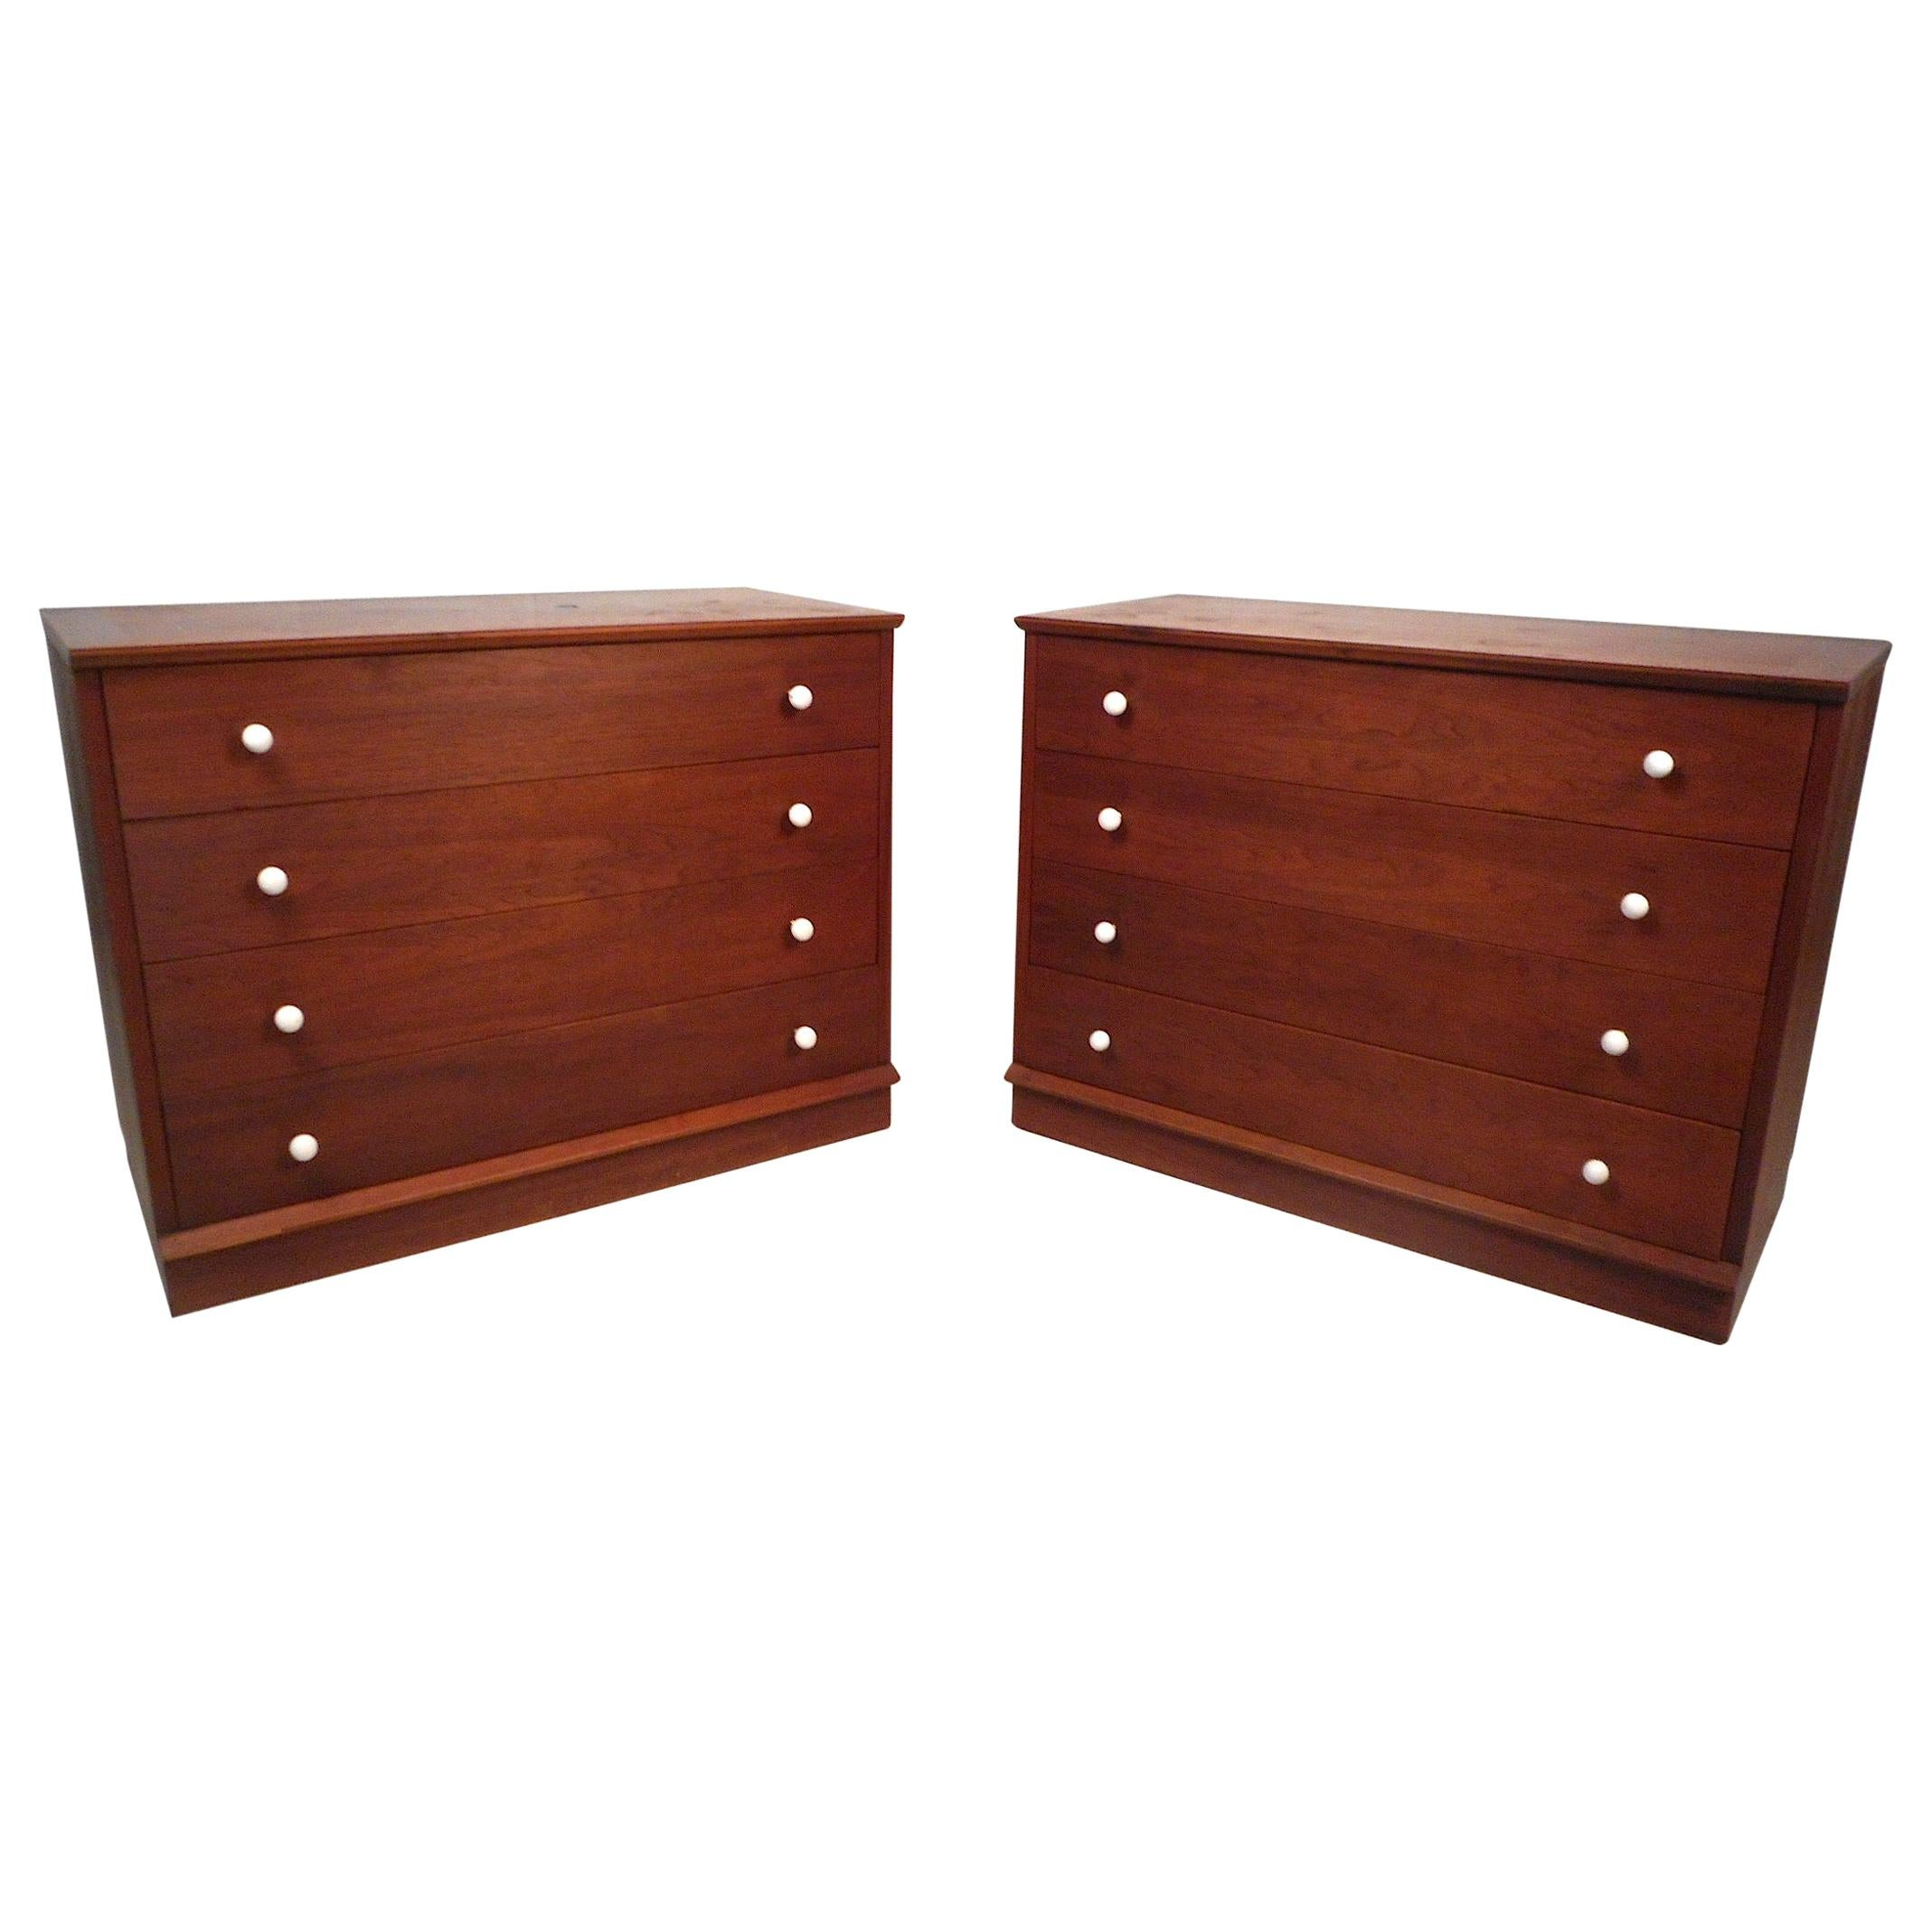 Midcentury Four-Drawer Commodes, a Pair